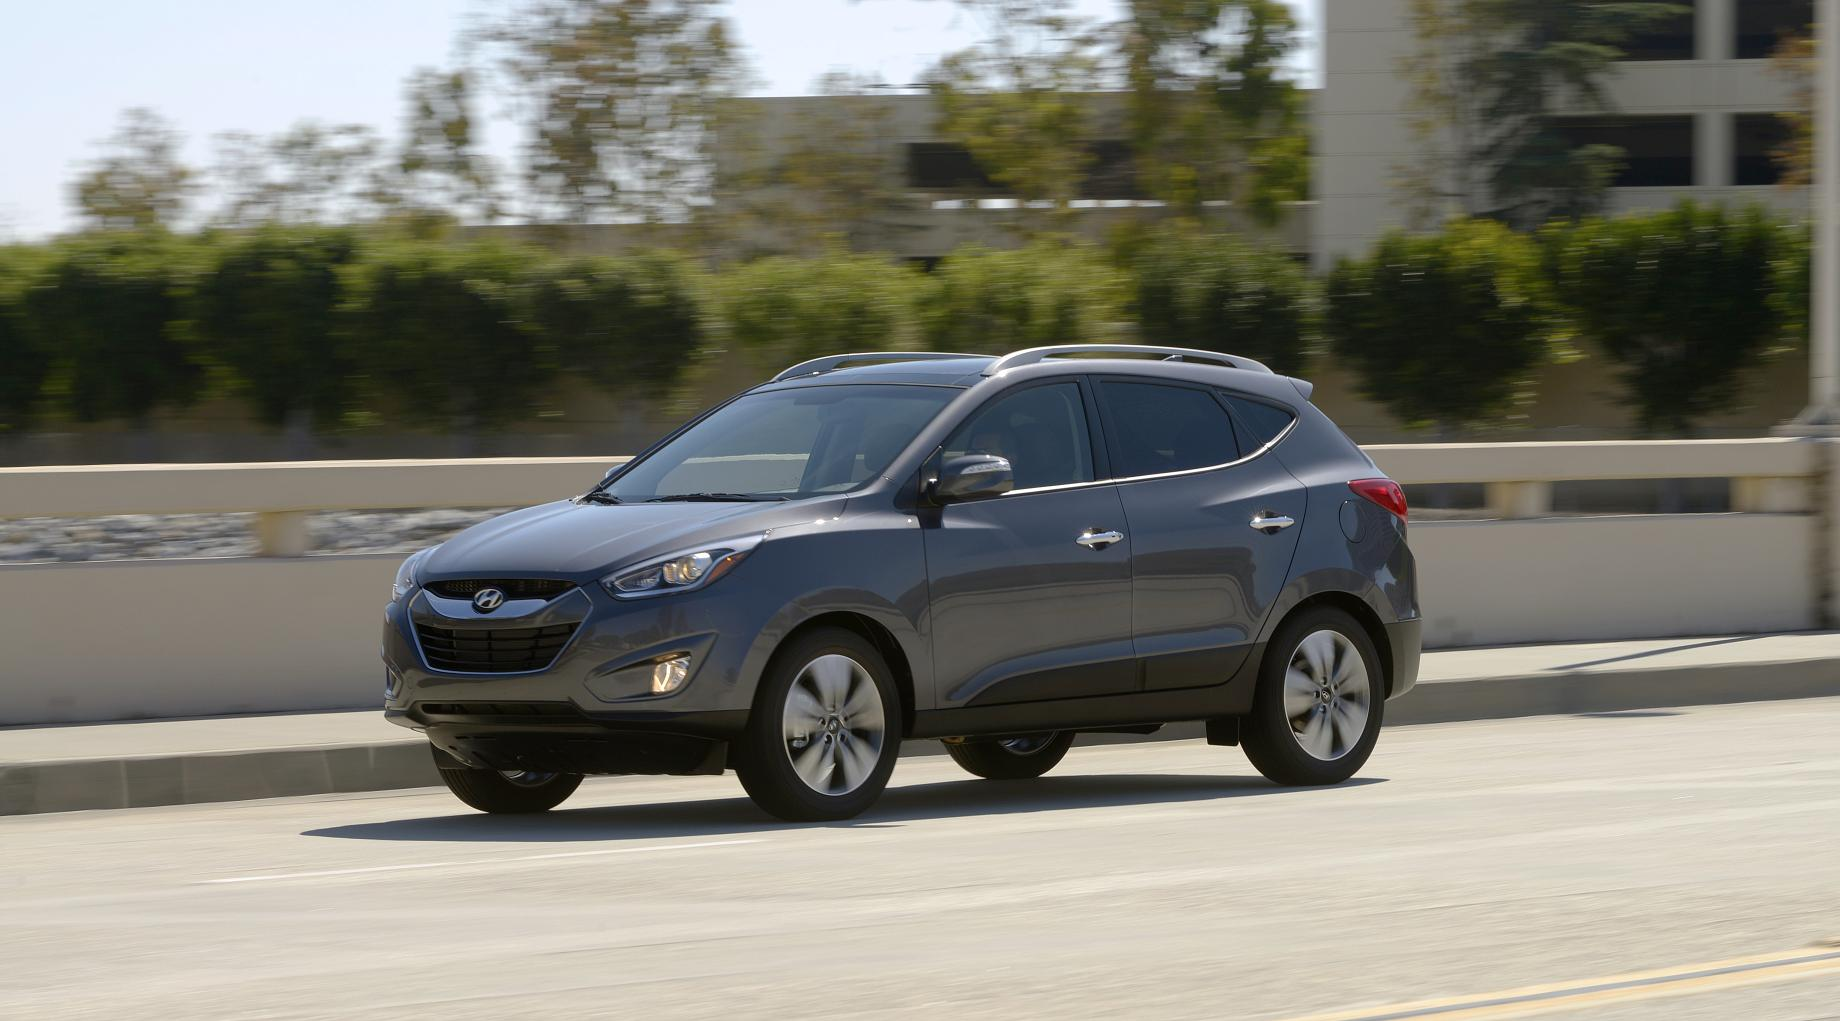 tucson trims autotrader price options photos research bfdb specs reviews hyundai ca